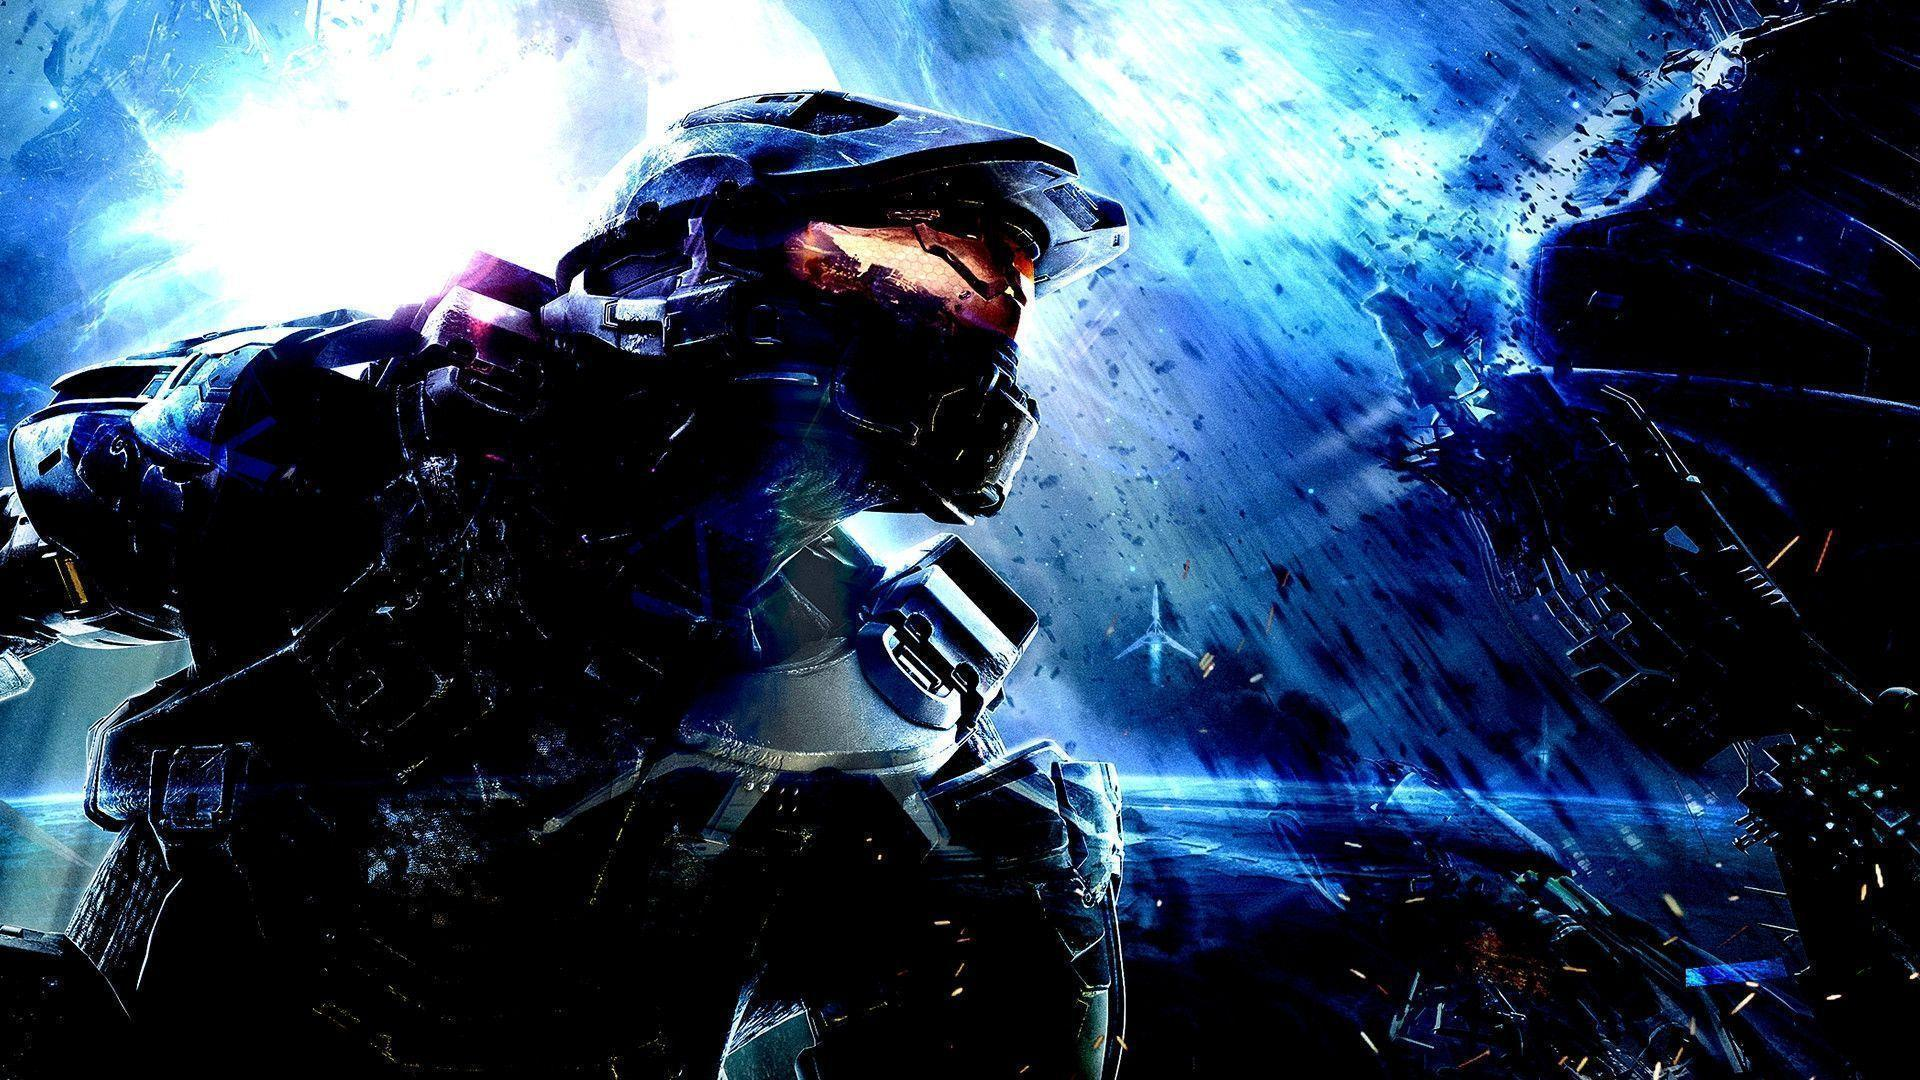 Download Halo Wallpapers Res 1920x1080PX ~ Wallpapers Halo 4 Desktop